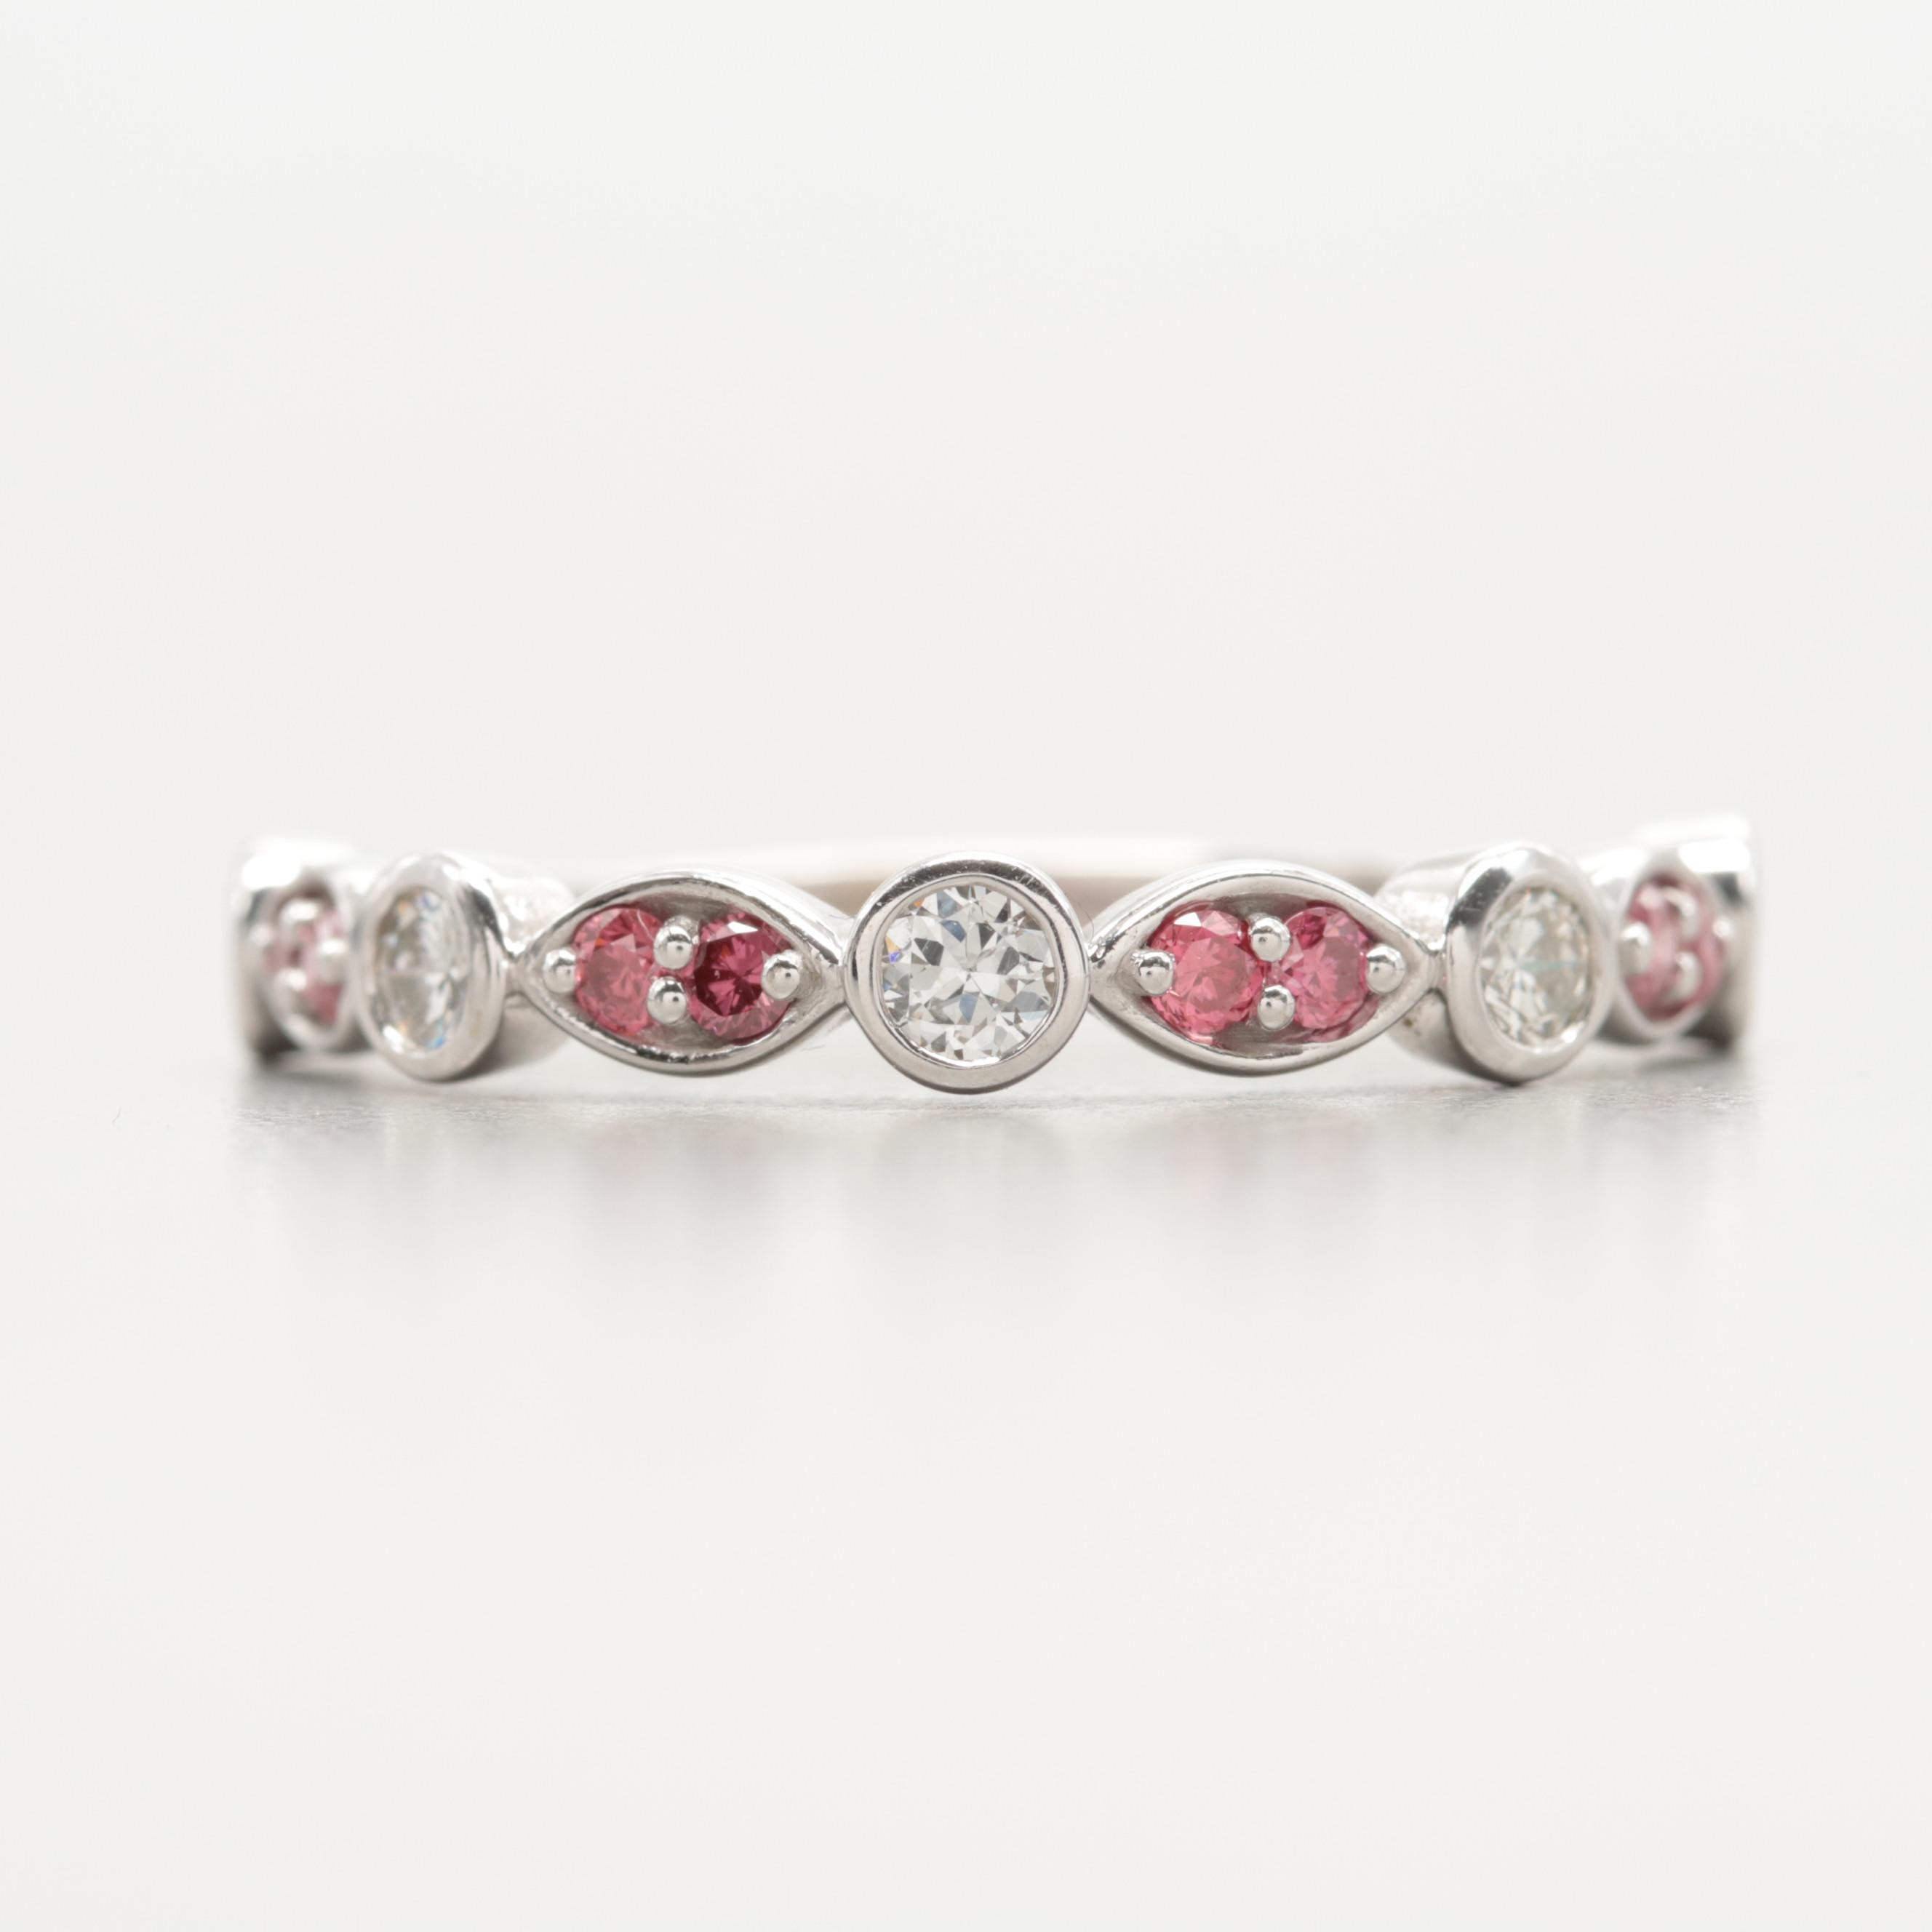 14K White Gold Diamond Ring Featuring Pink Diamonds